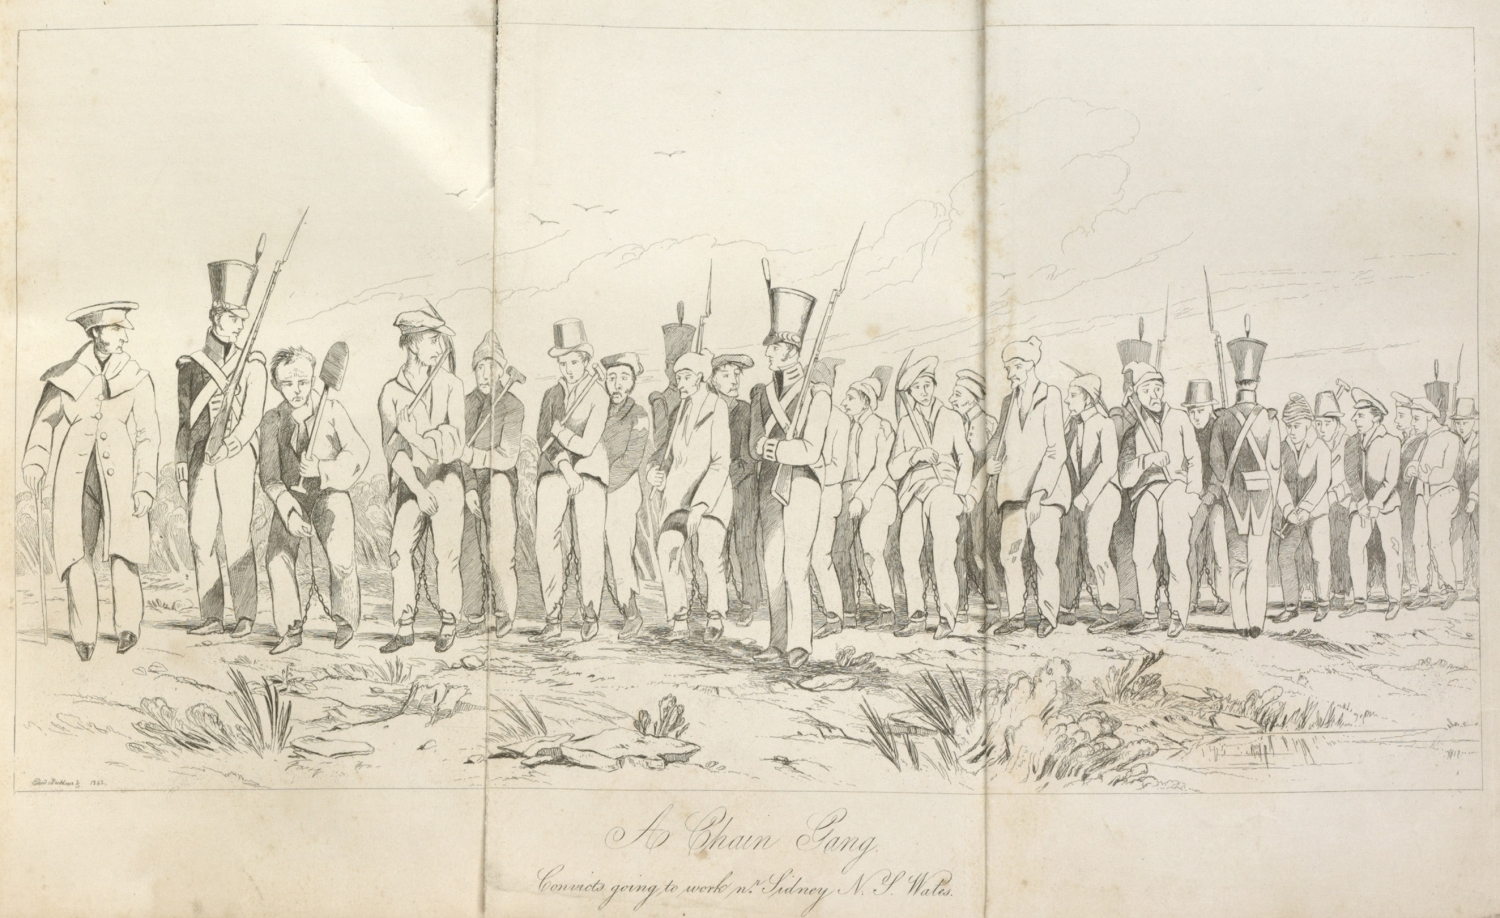 Illustration of group of men on chain gang.